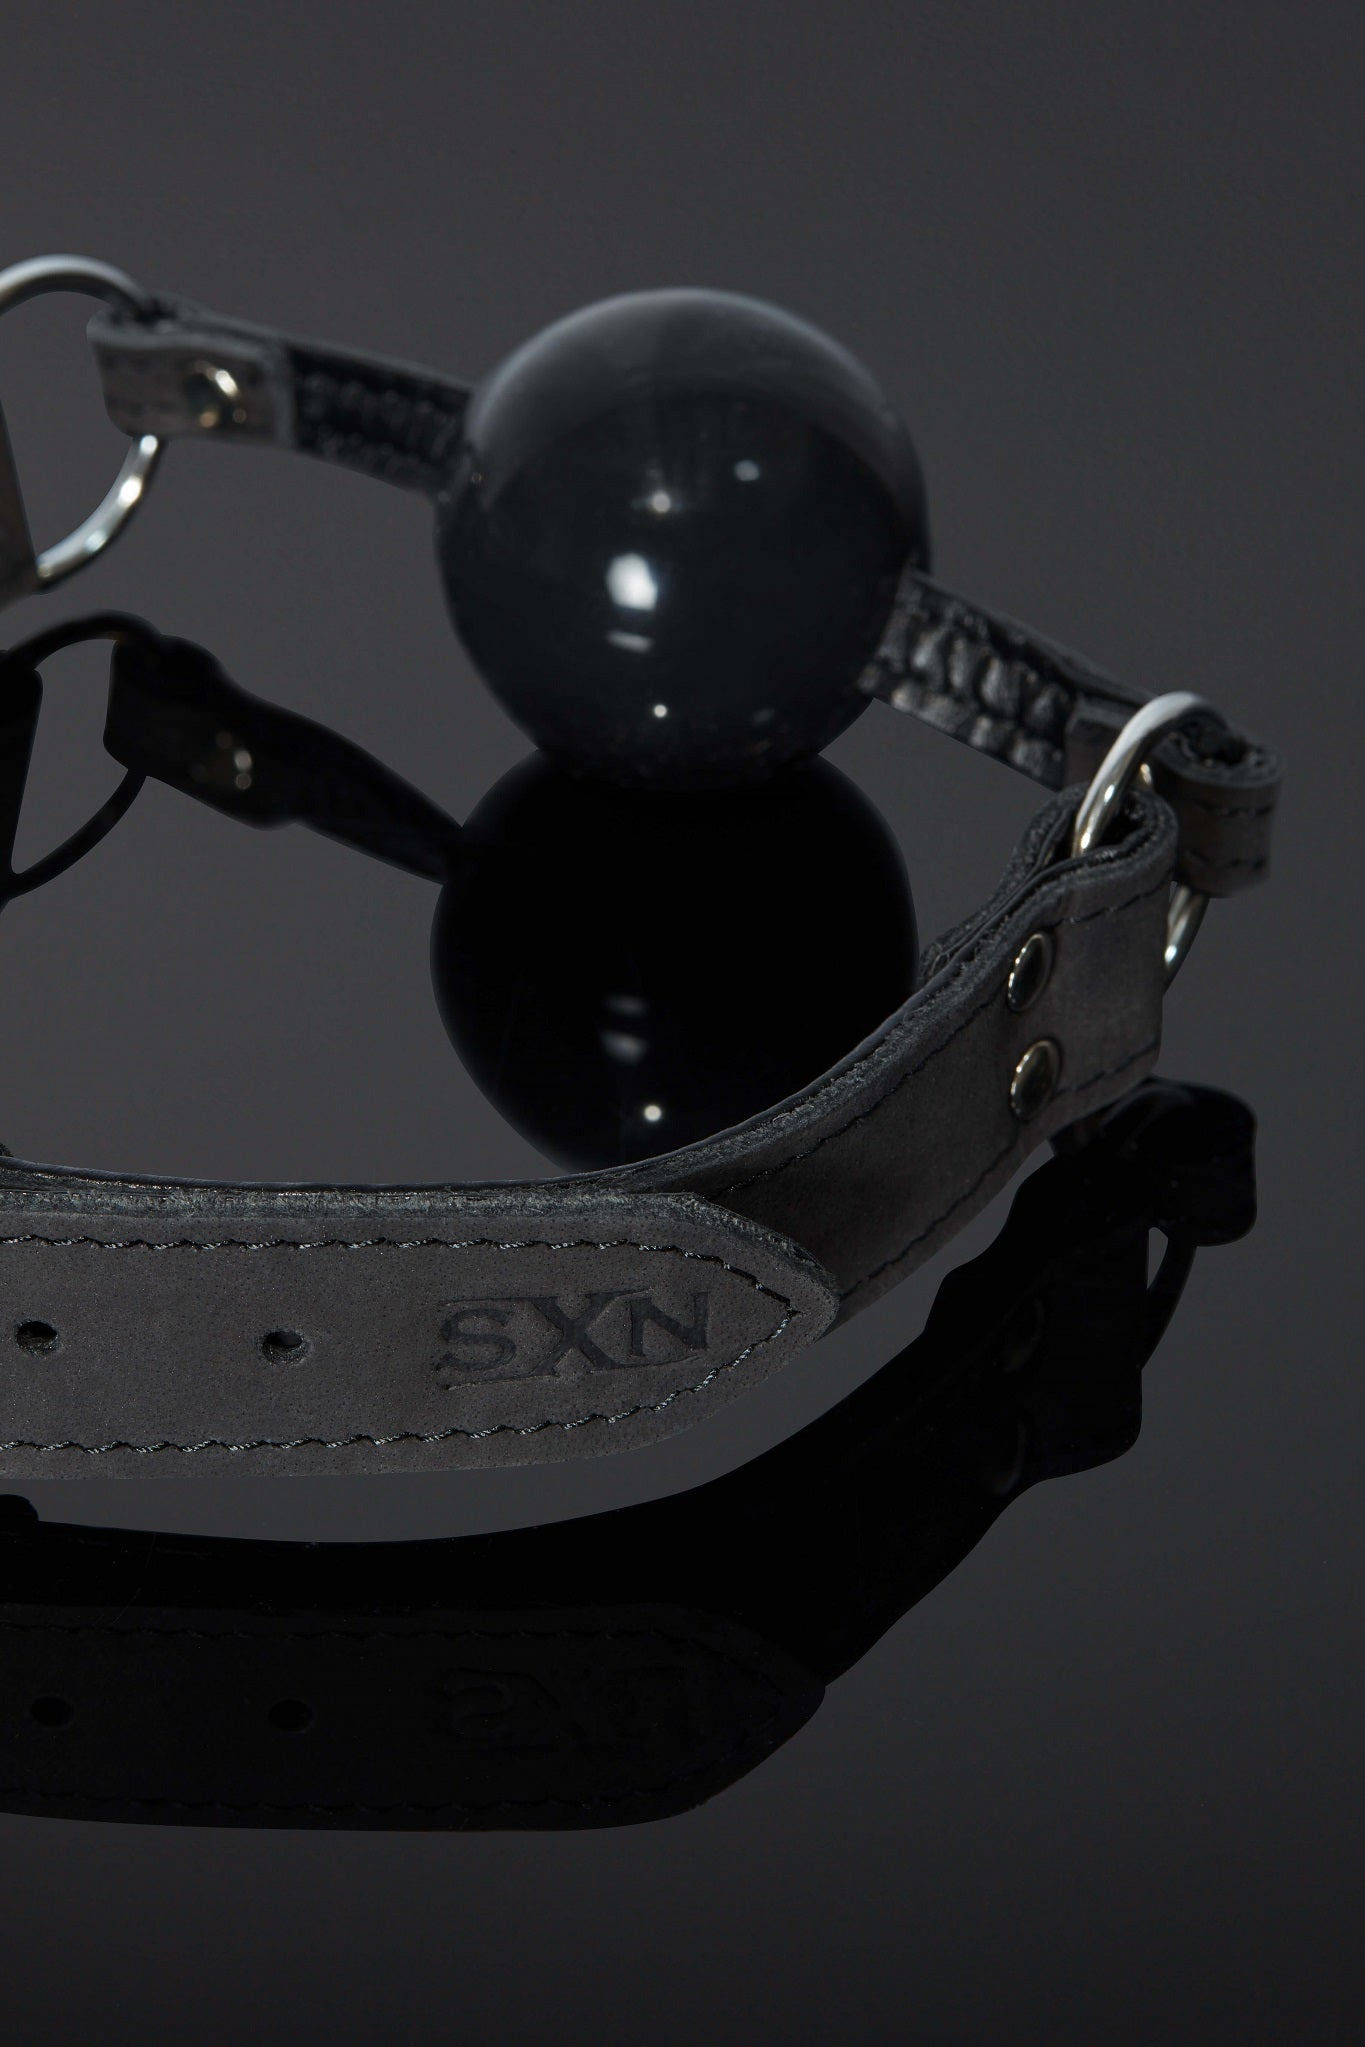 House of SXN Sphaera Ball Gag Details